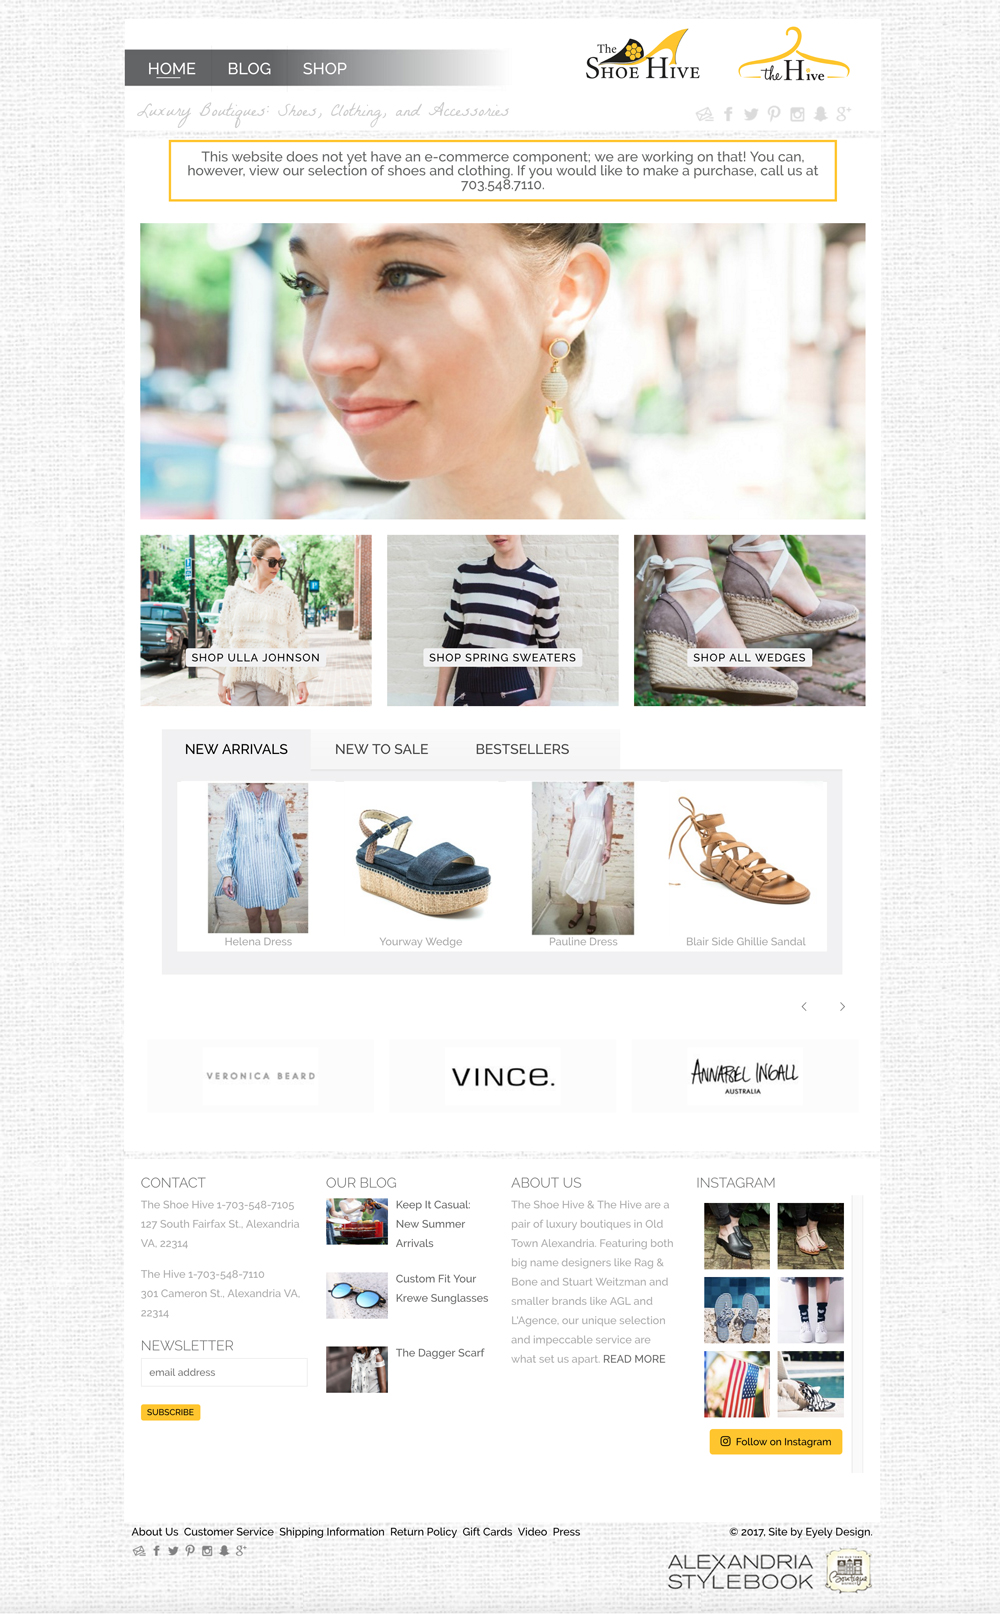 shoe and clothing website the shoe hive the hive website alexandria va